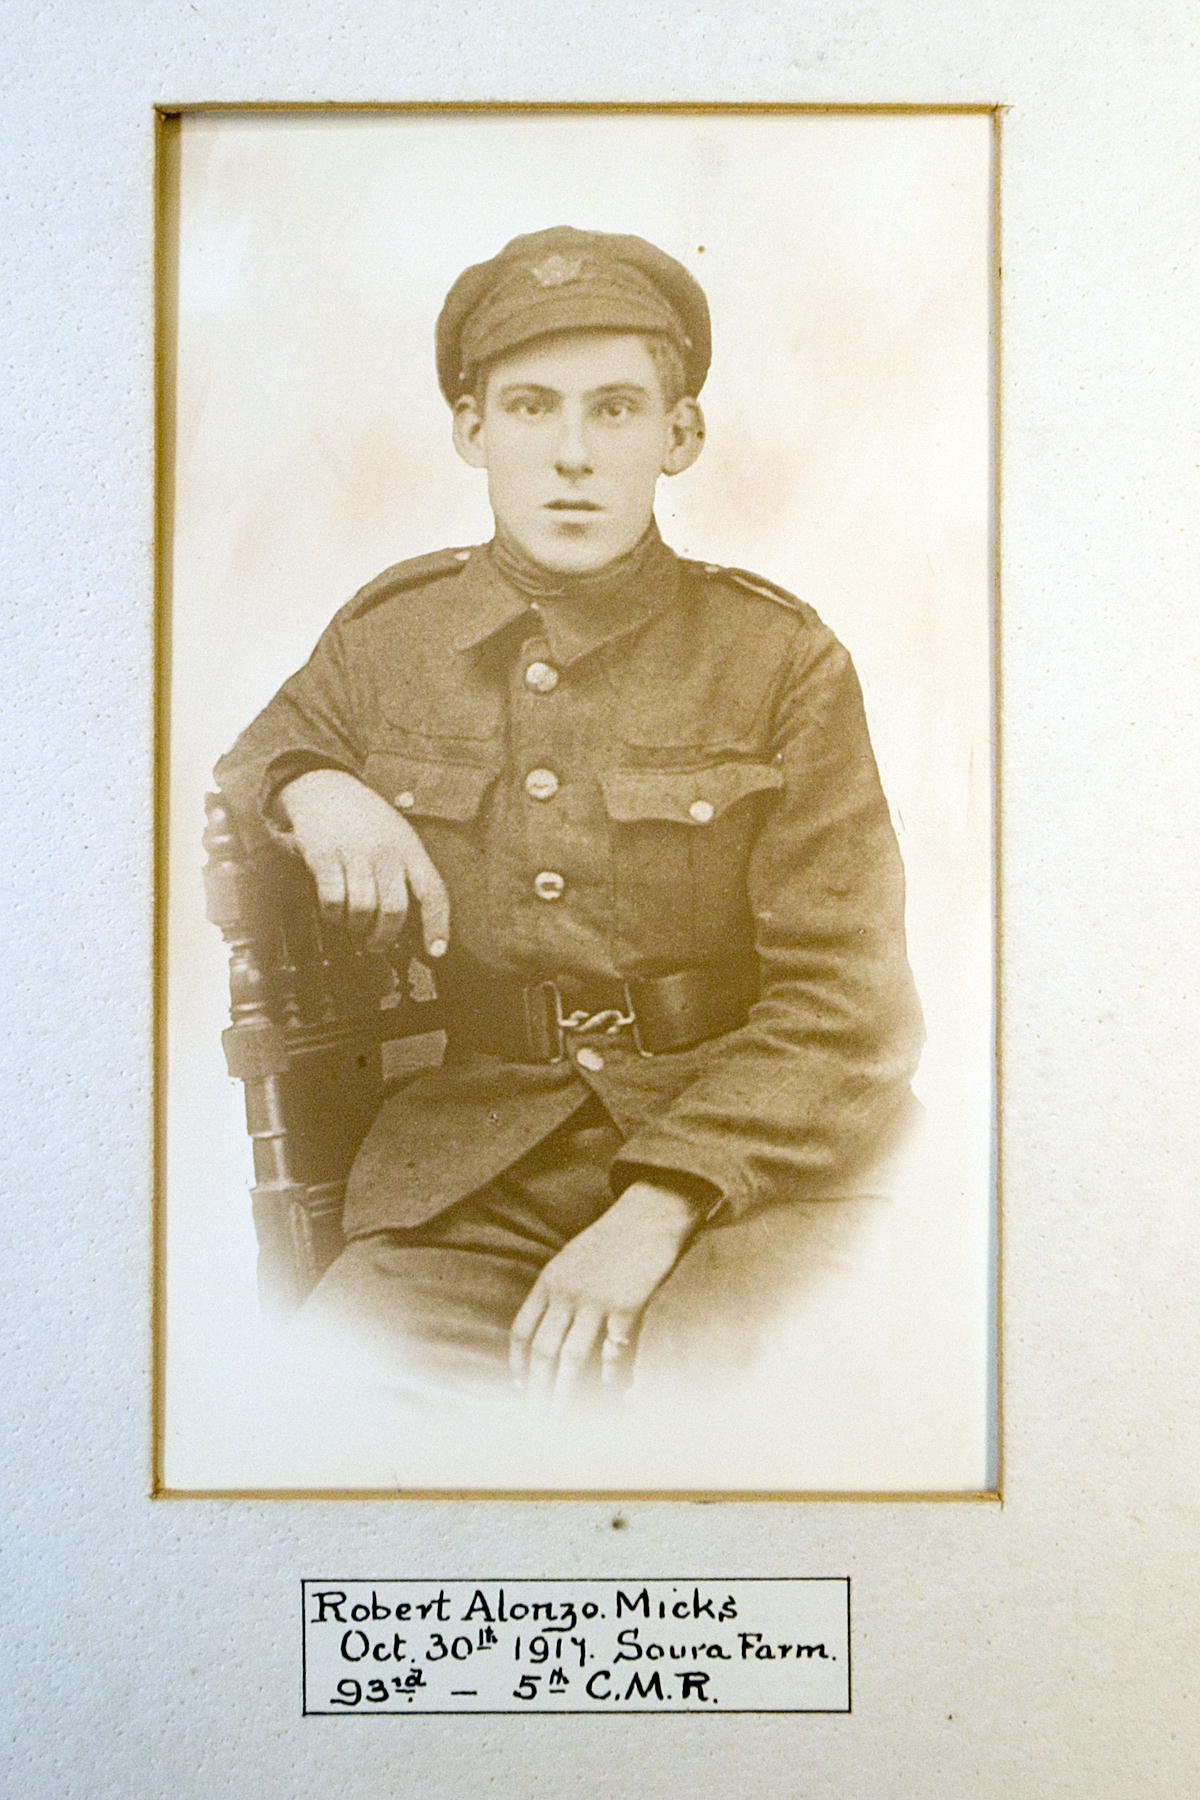 Robert Micks: killed at Passchendaele 30/31 October 1917